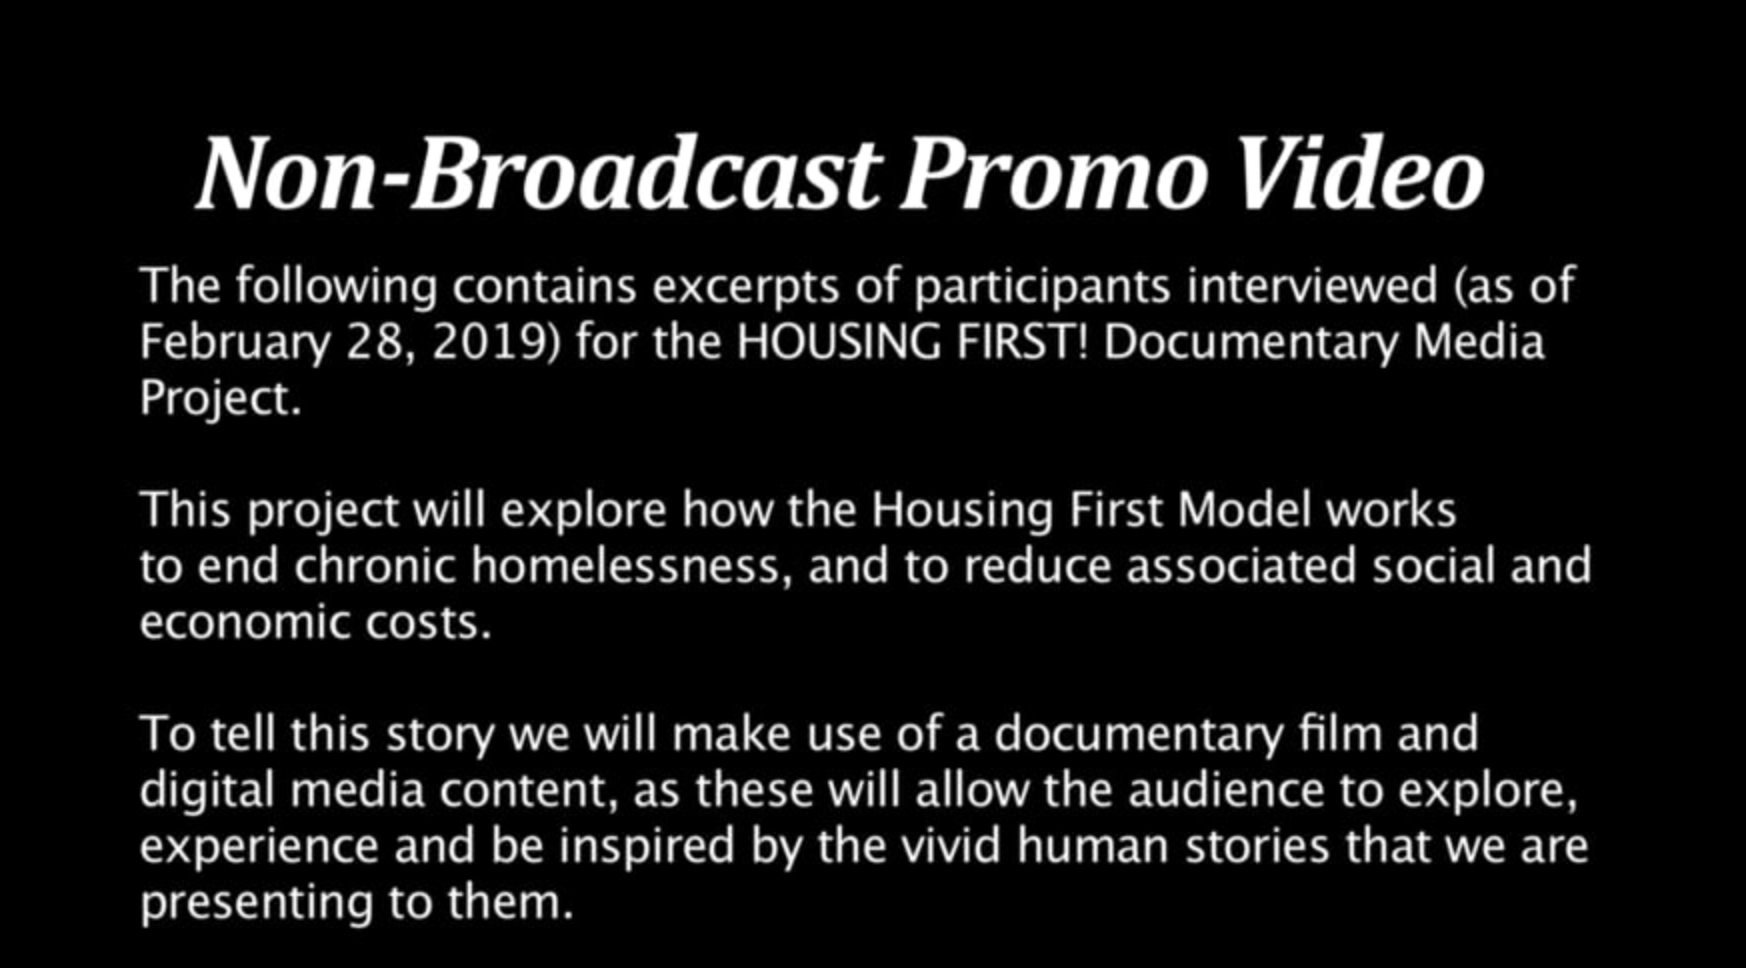 HF Non-Broadcast Promo Video - Opening Screen Shot